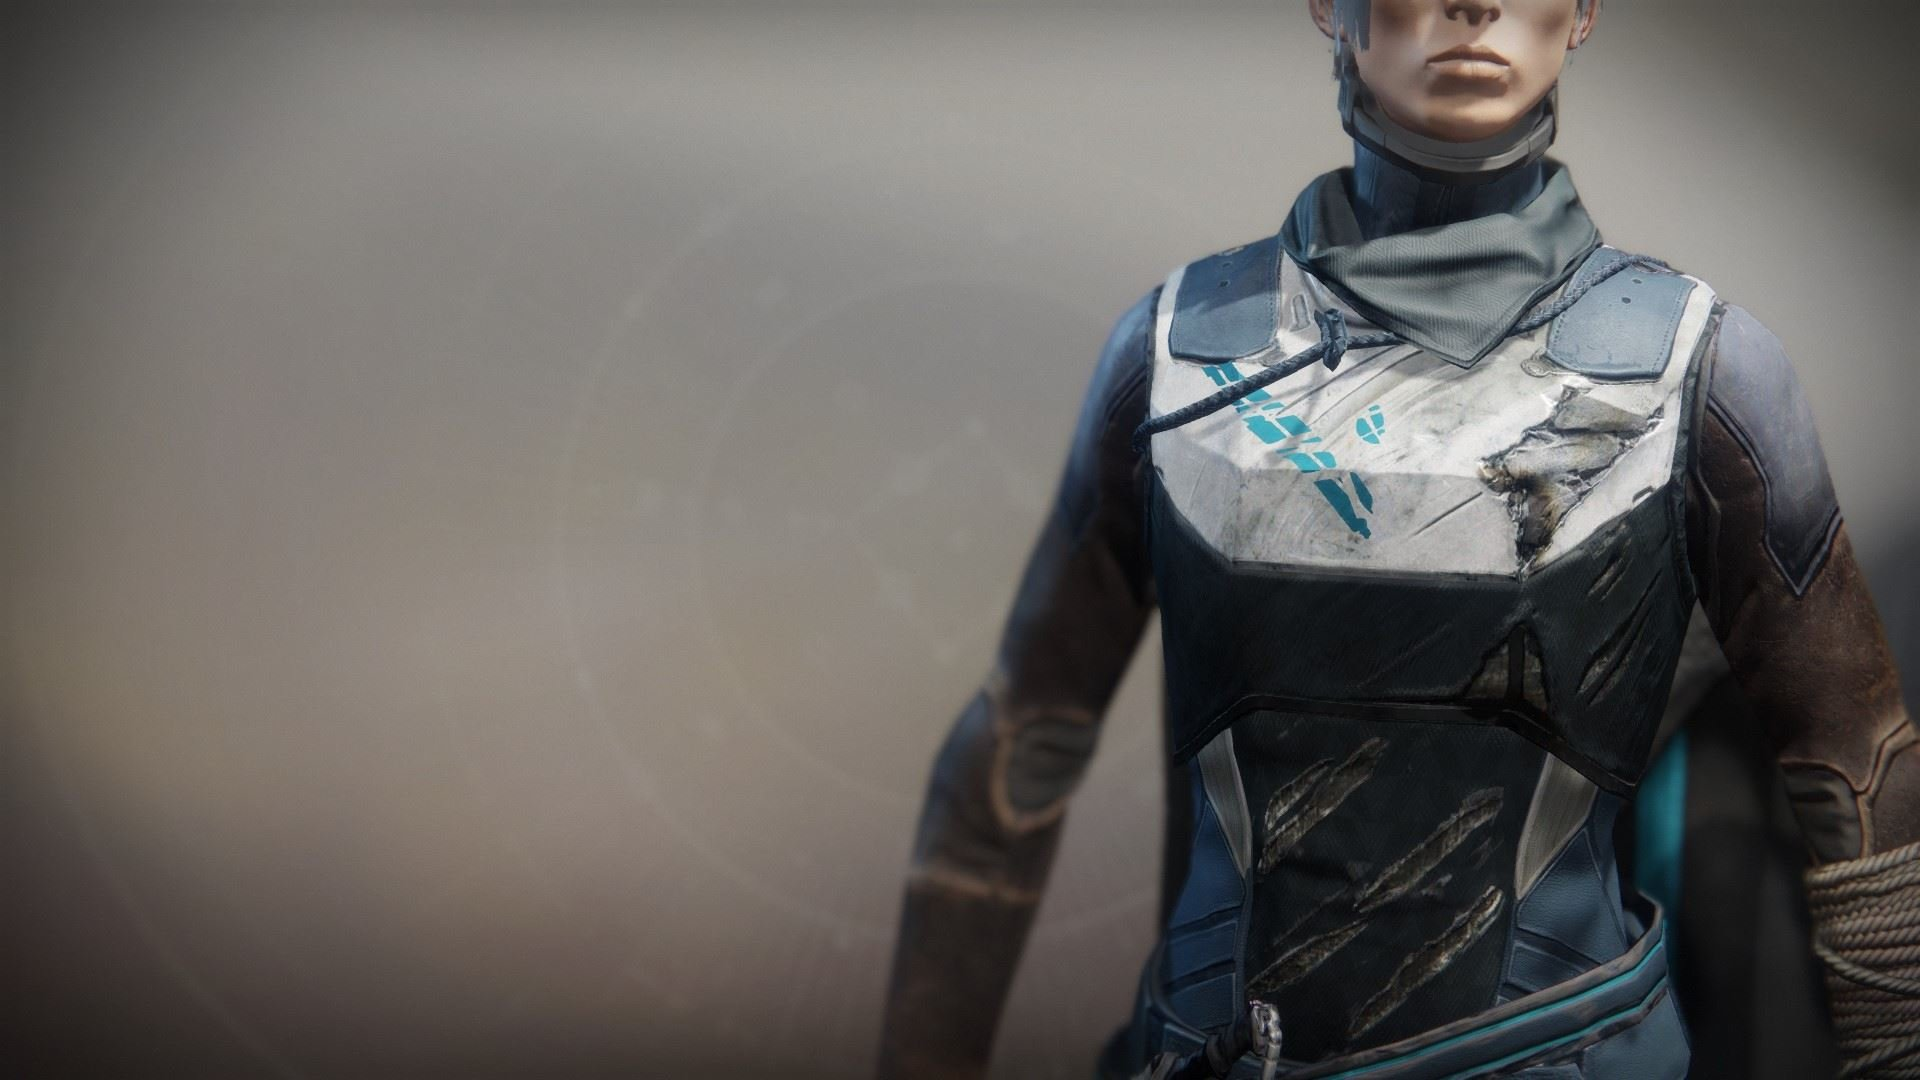 An in-game render of the Solstice Vest (Scorched).